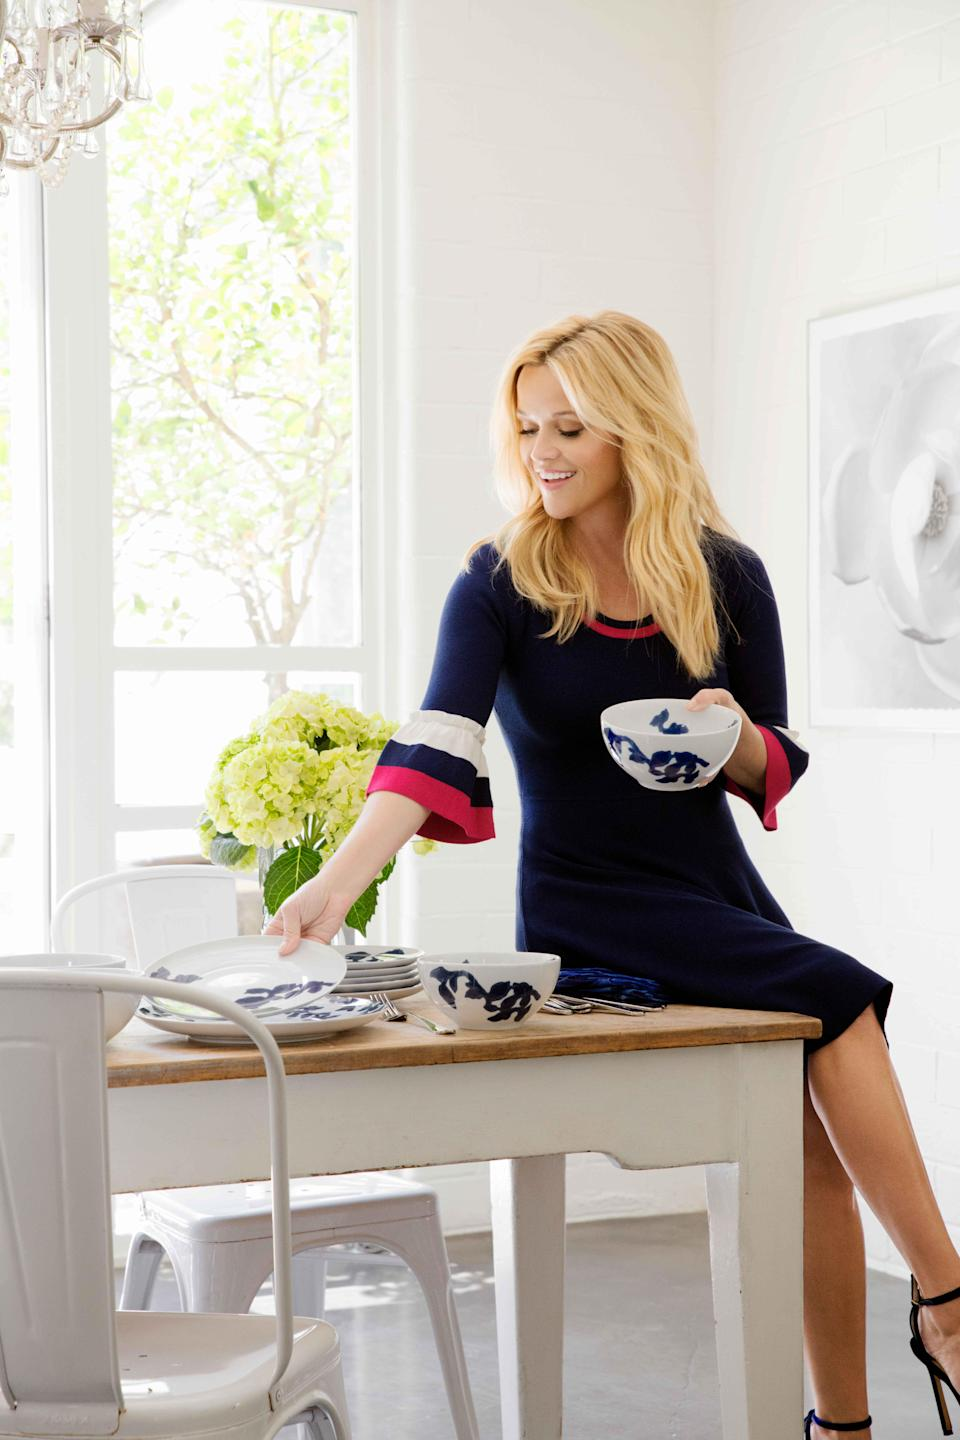 Reese Witherspoon's Draper James fashion label is having a big sale from Jan. 11 through Jan. 13. (Photo: Draper James)